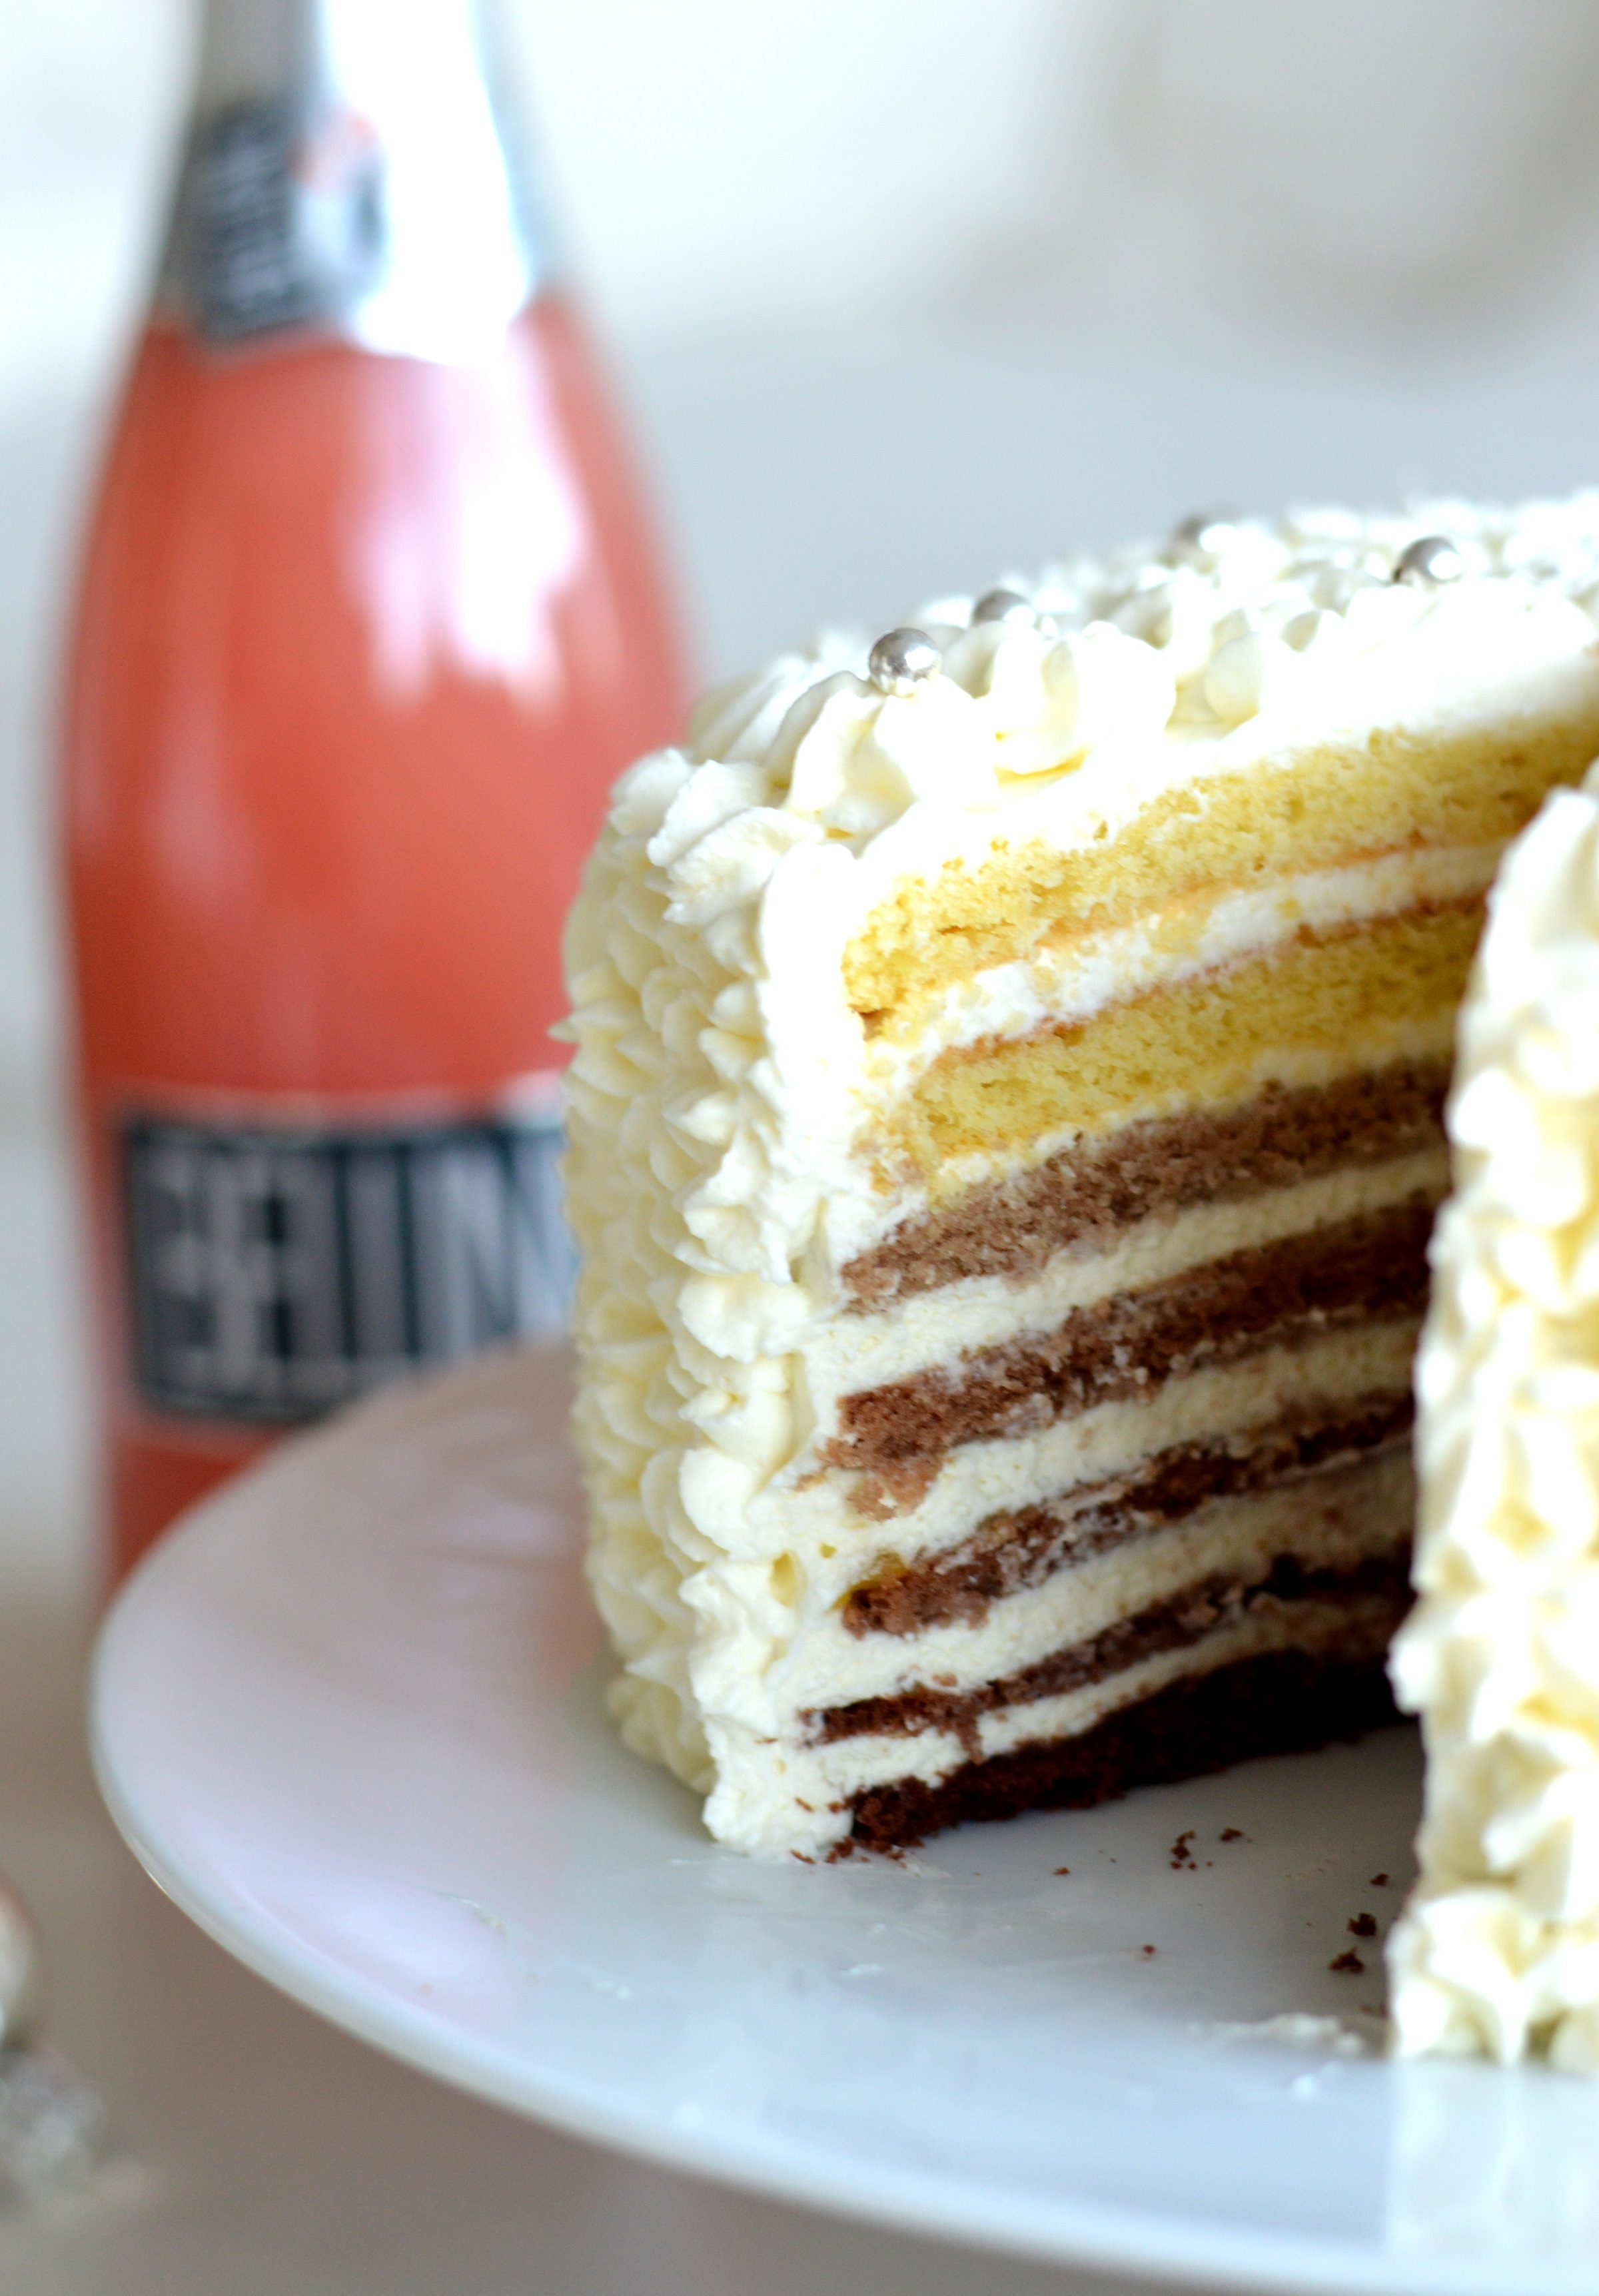 [Yes, you can do much more with Prosecco than just drinking] Bellini cake*